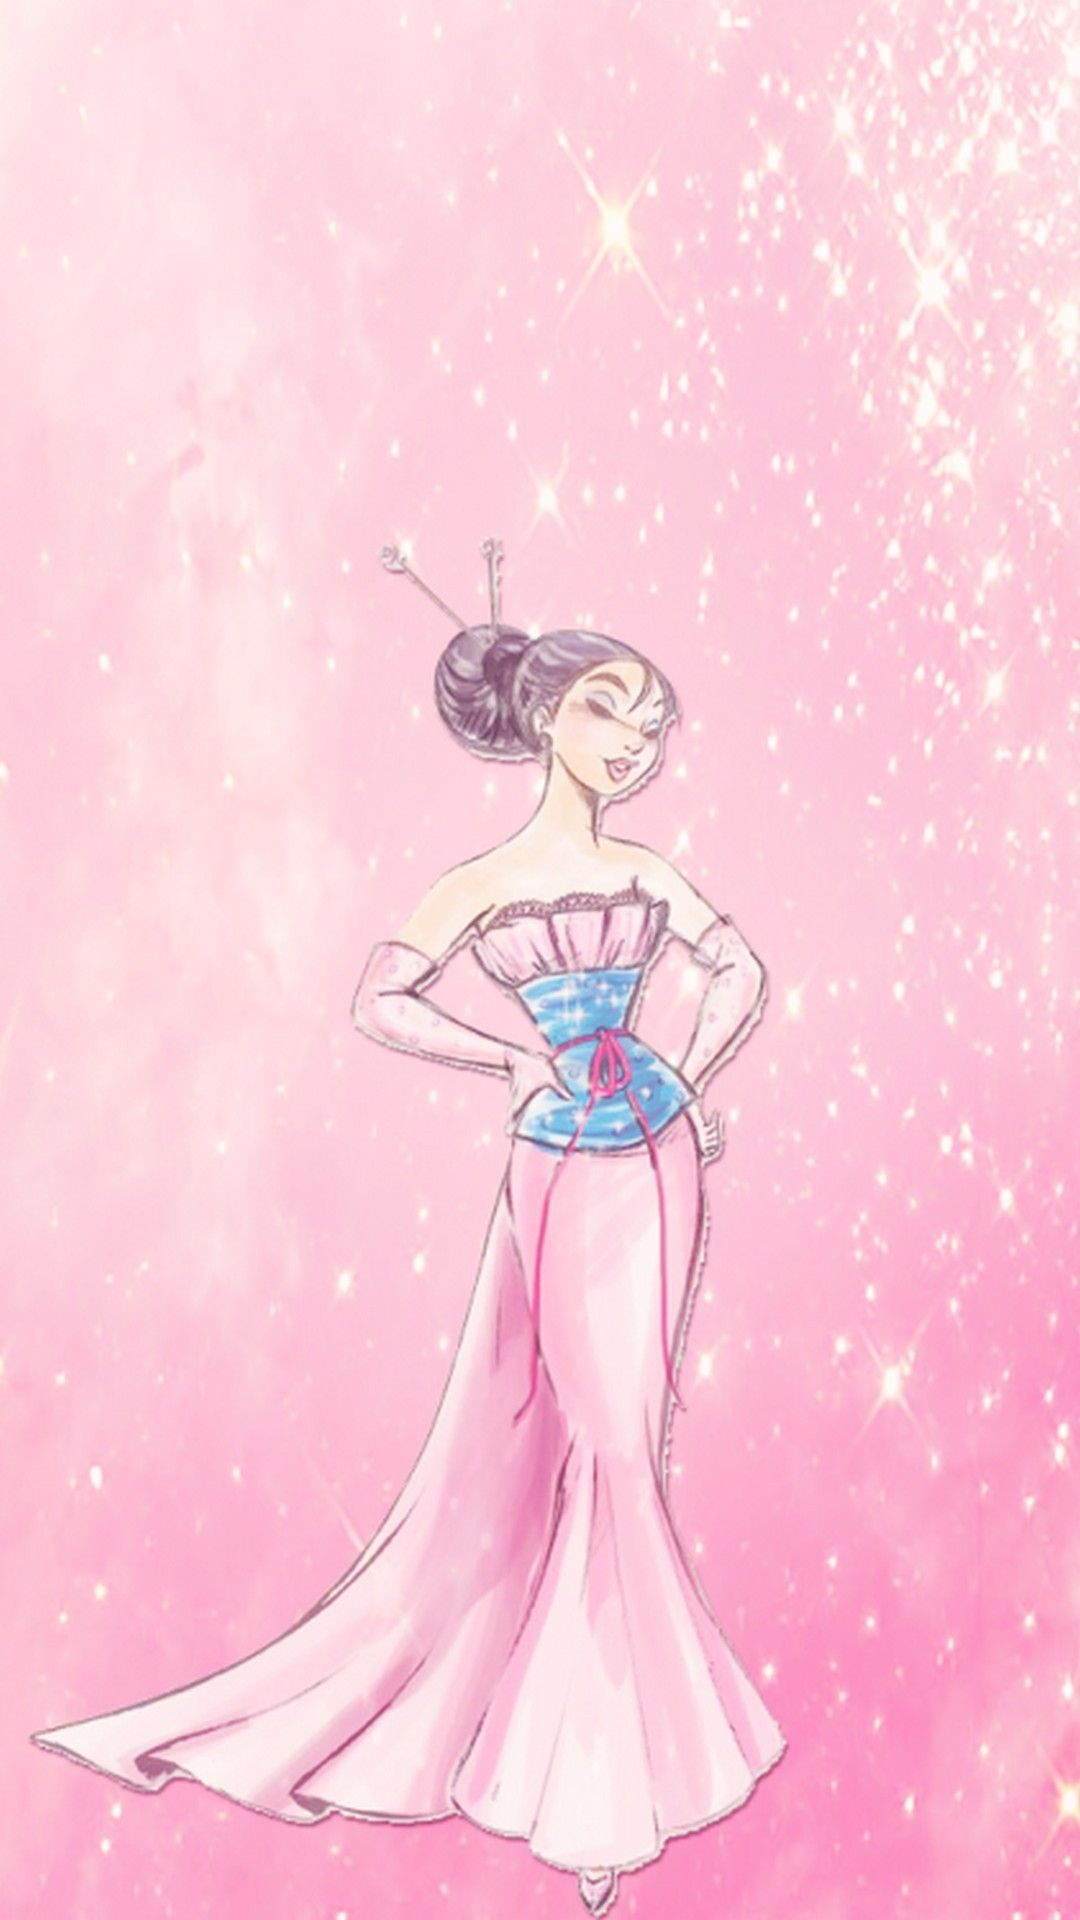 Girly Pink Wallpaper 1080p Hupages Download Iphone Wallpapers Disney Wallpaper Mulan Disney Cute Wallpapers